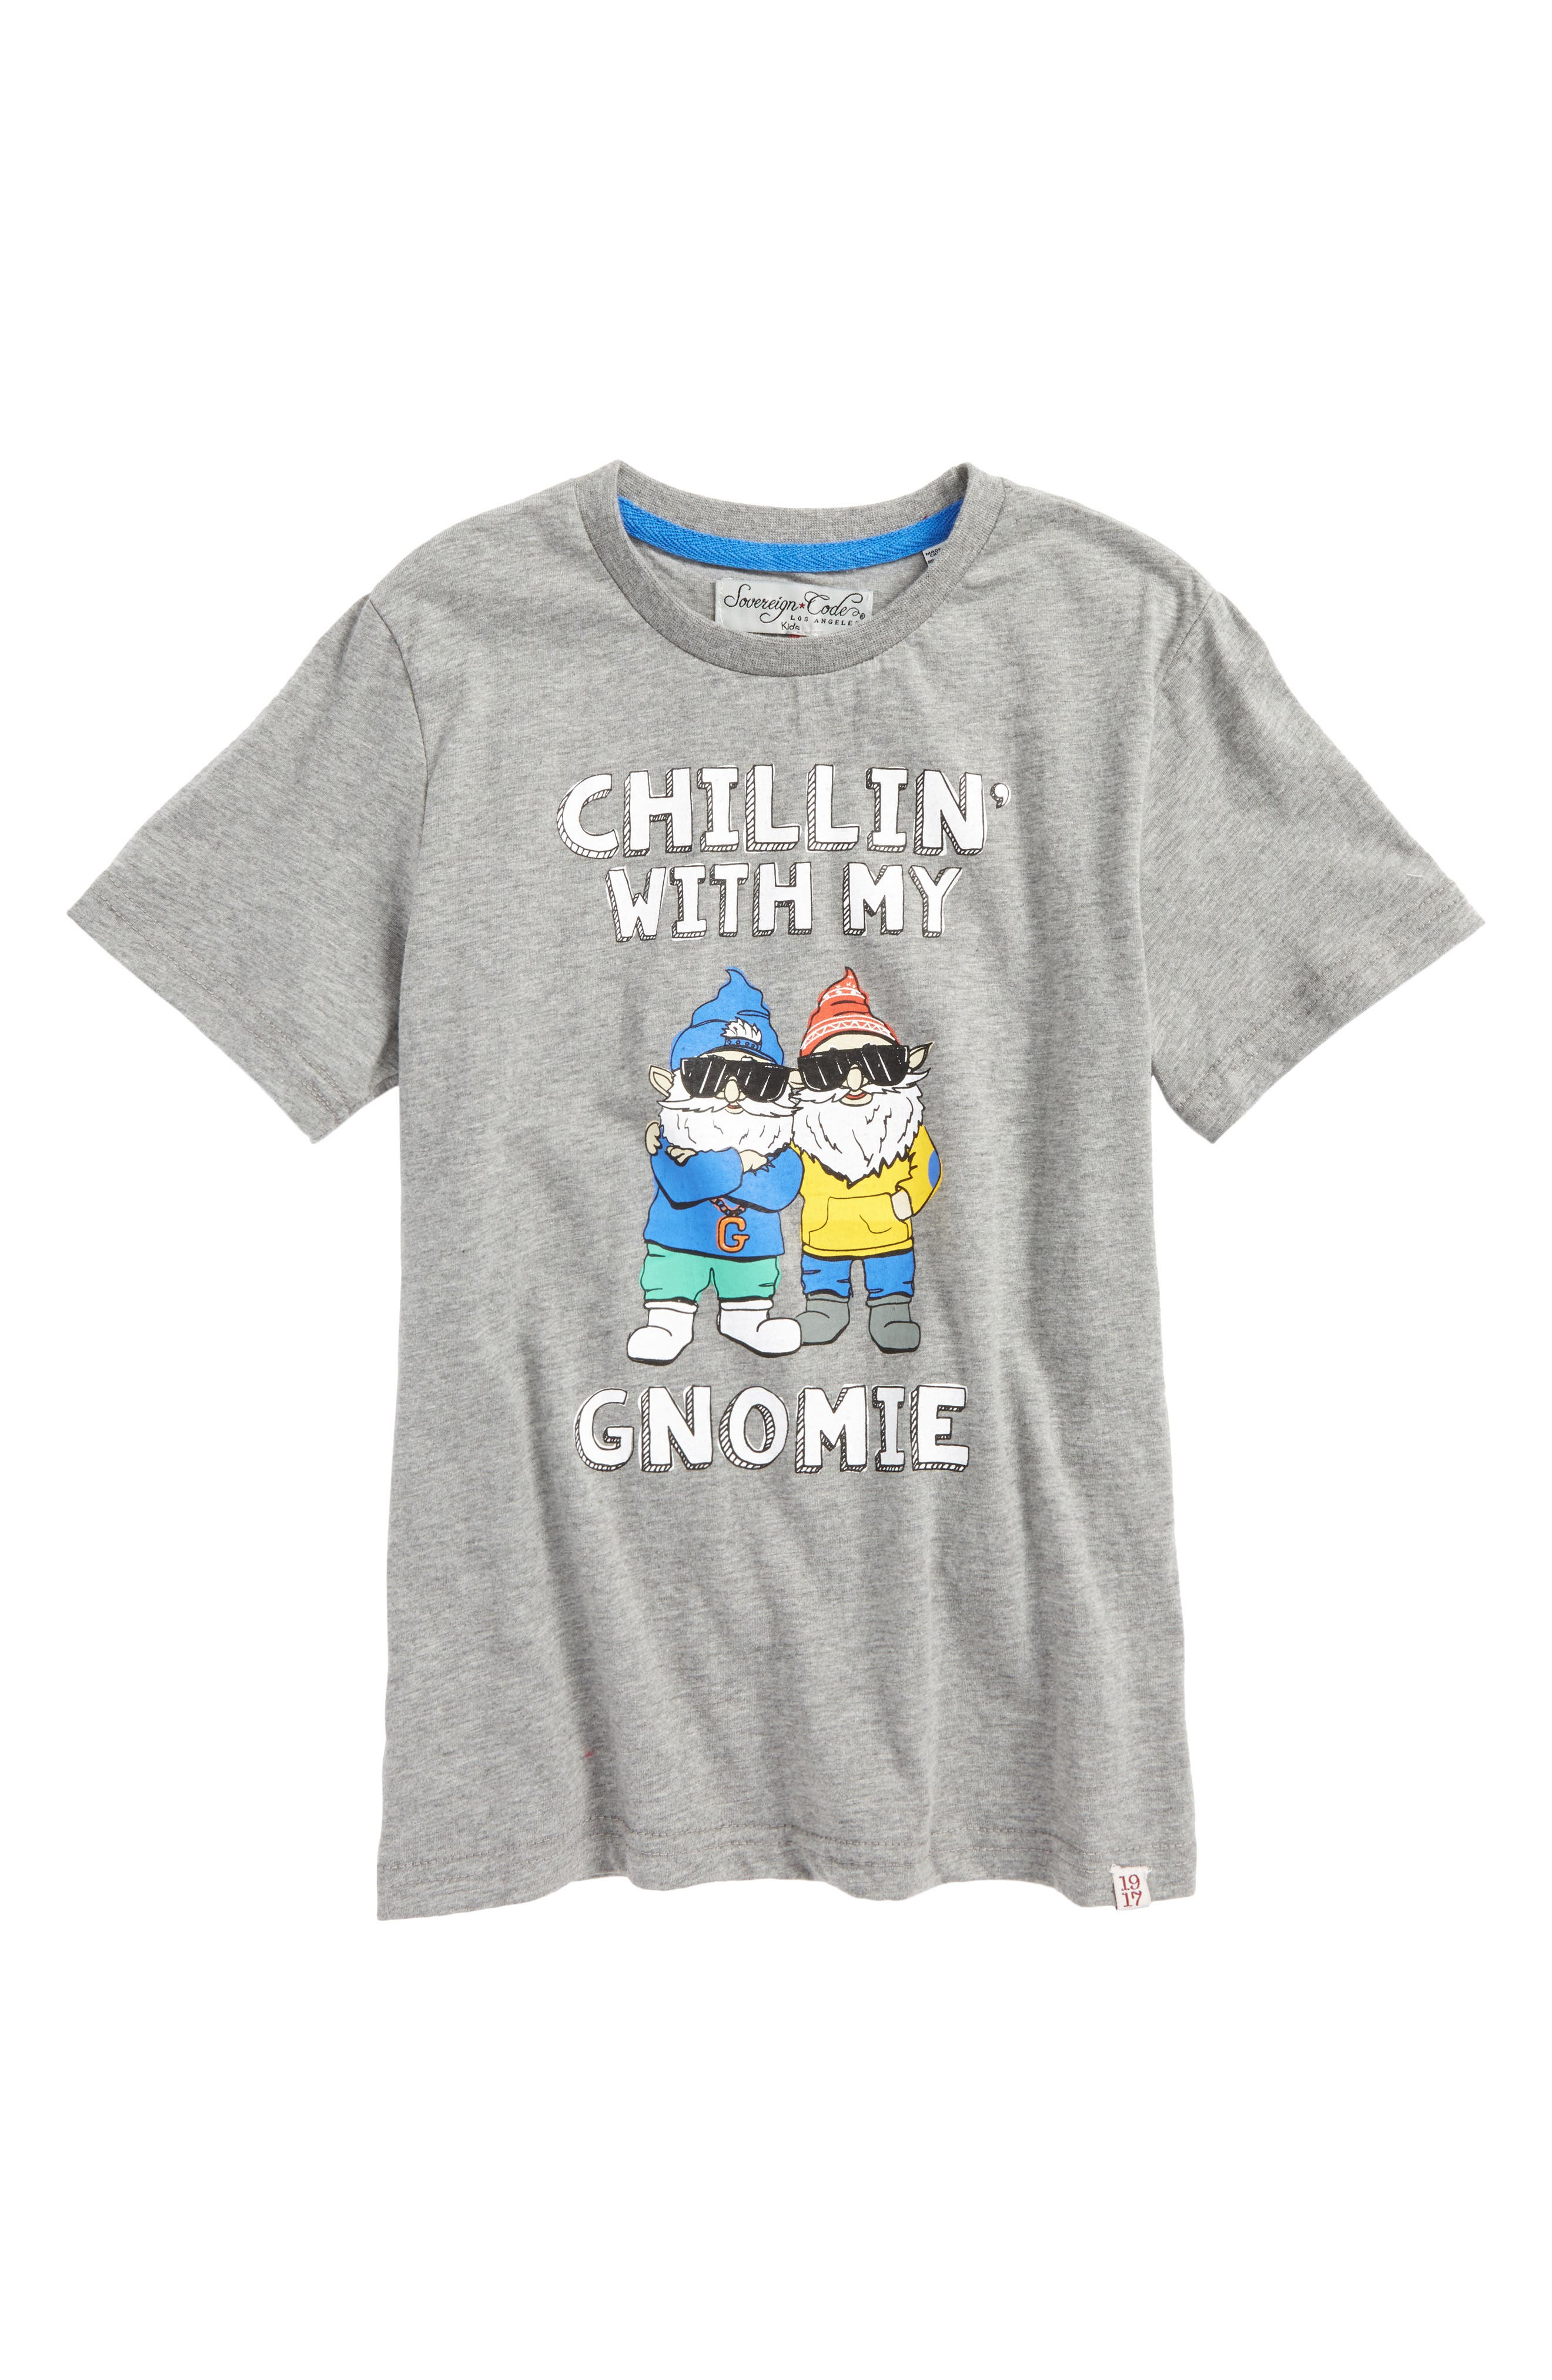 Alternate Image 1 Selected - Sovereign Code Gnomies Graphic T-Shirt (Toddler Boys & Little Boys)